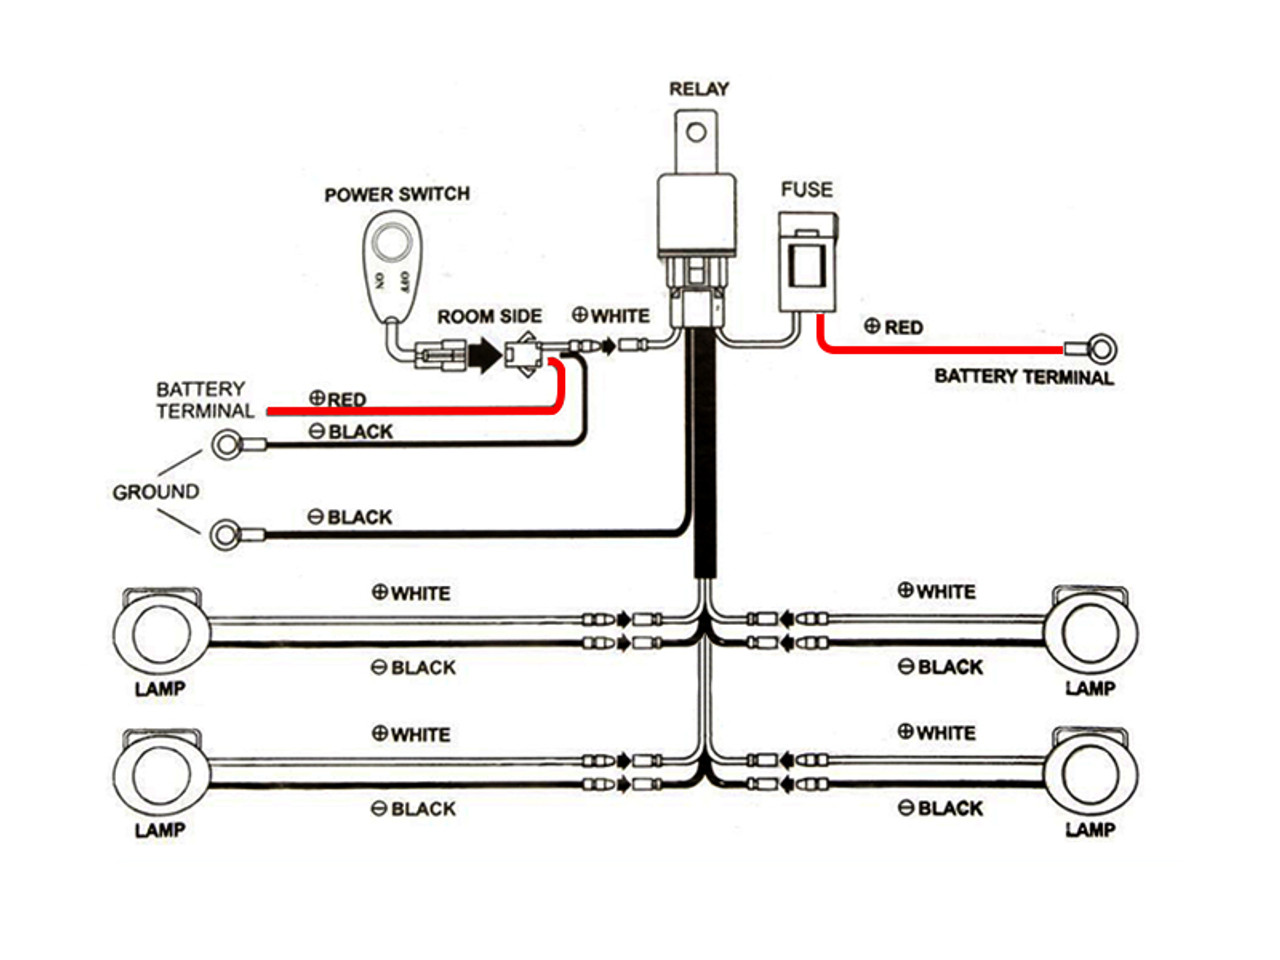 [SCHEMATICS_4NL]  Spotlight Relay Wiring Diagram - wiring diagrams schematics | 200x Wiring Diagram |  | wiring diagrams schematics